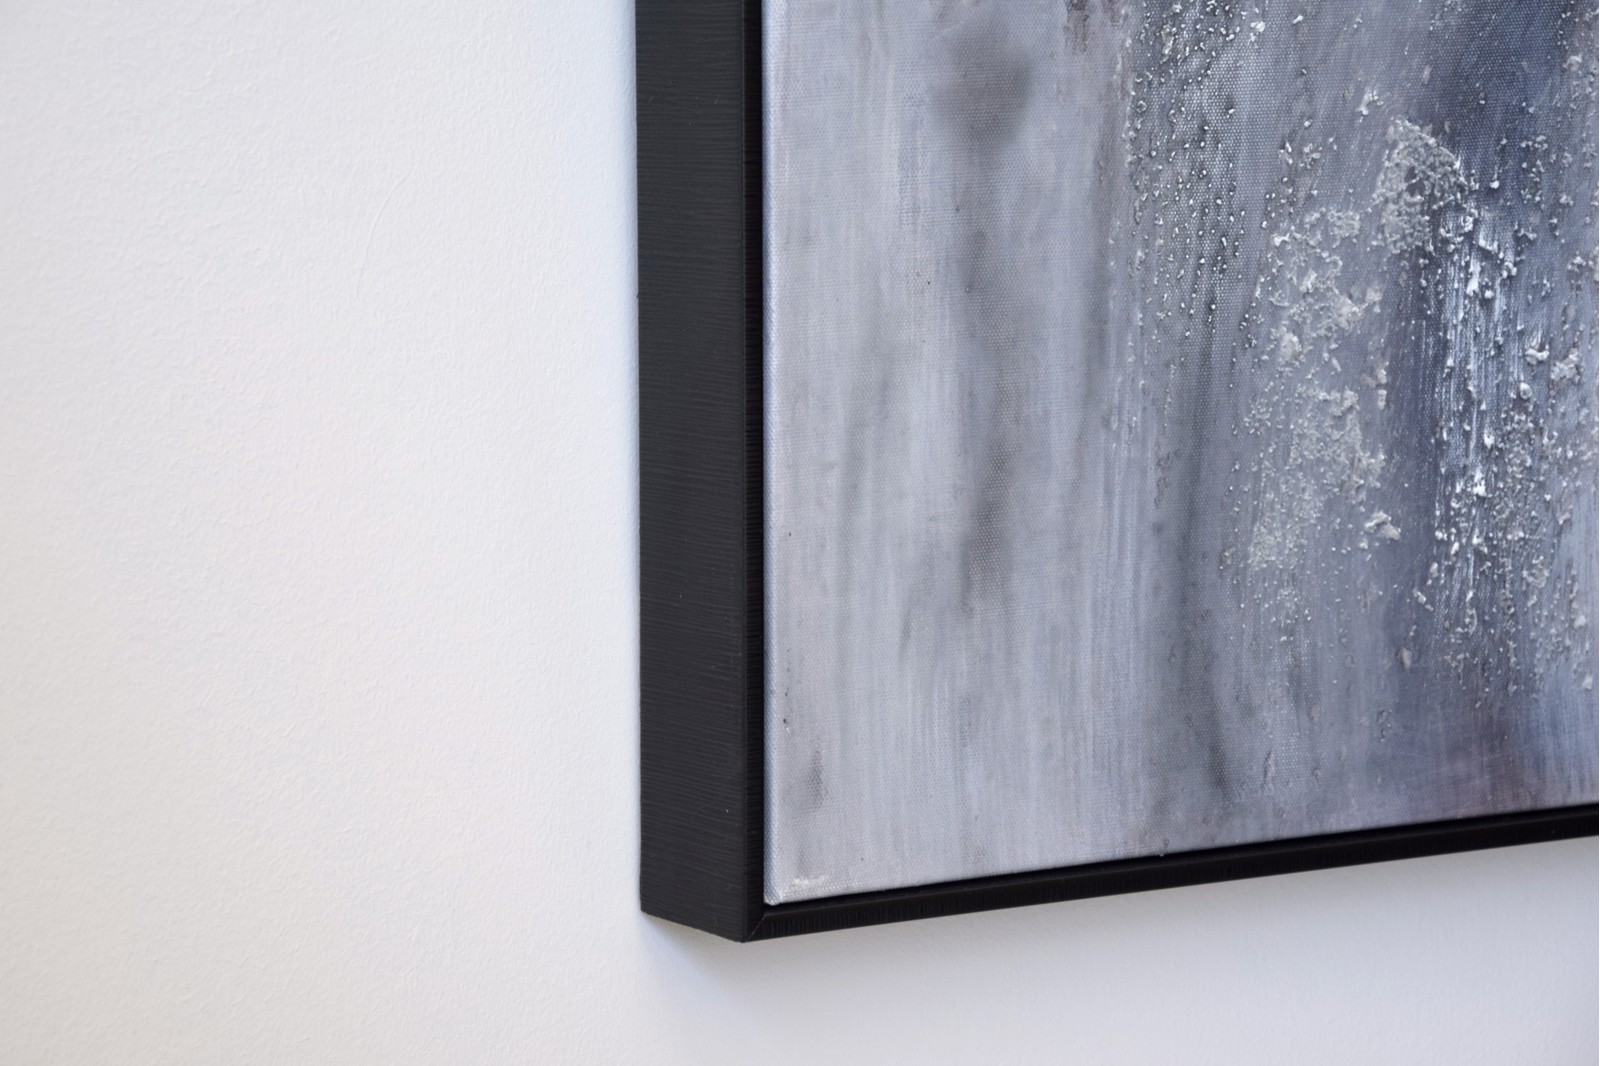 ABSTRACT PAINTING SNOW WITH FRAME